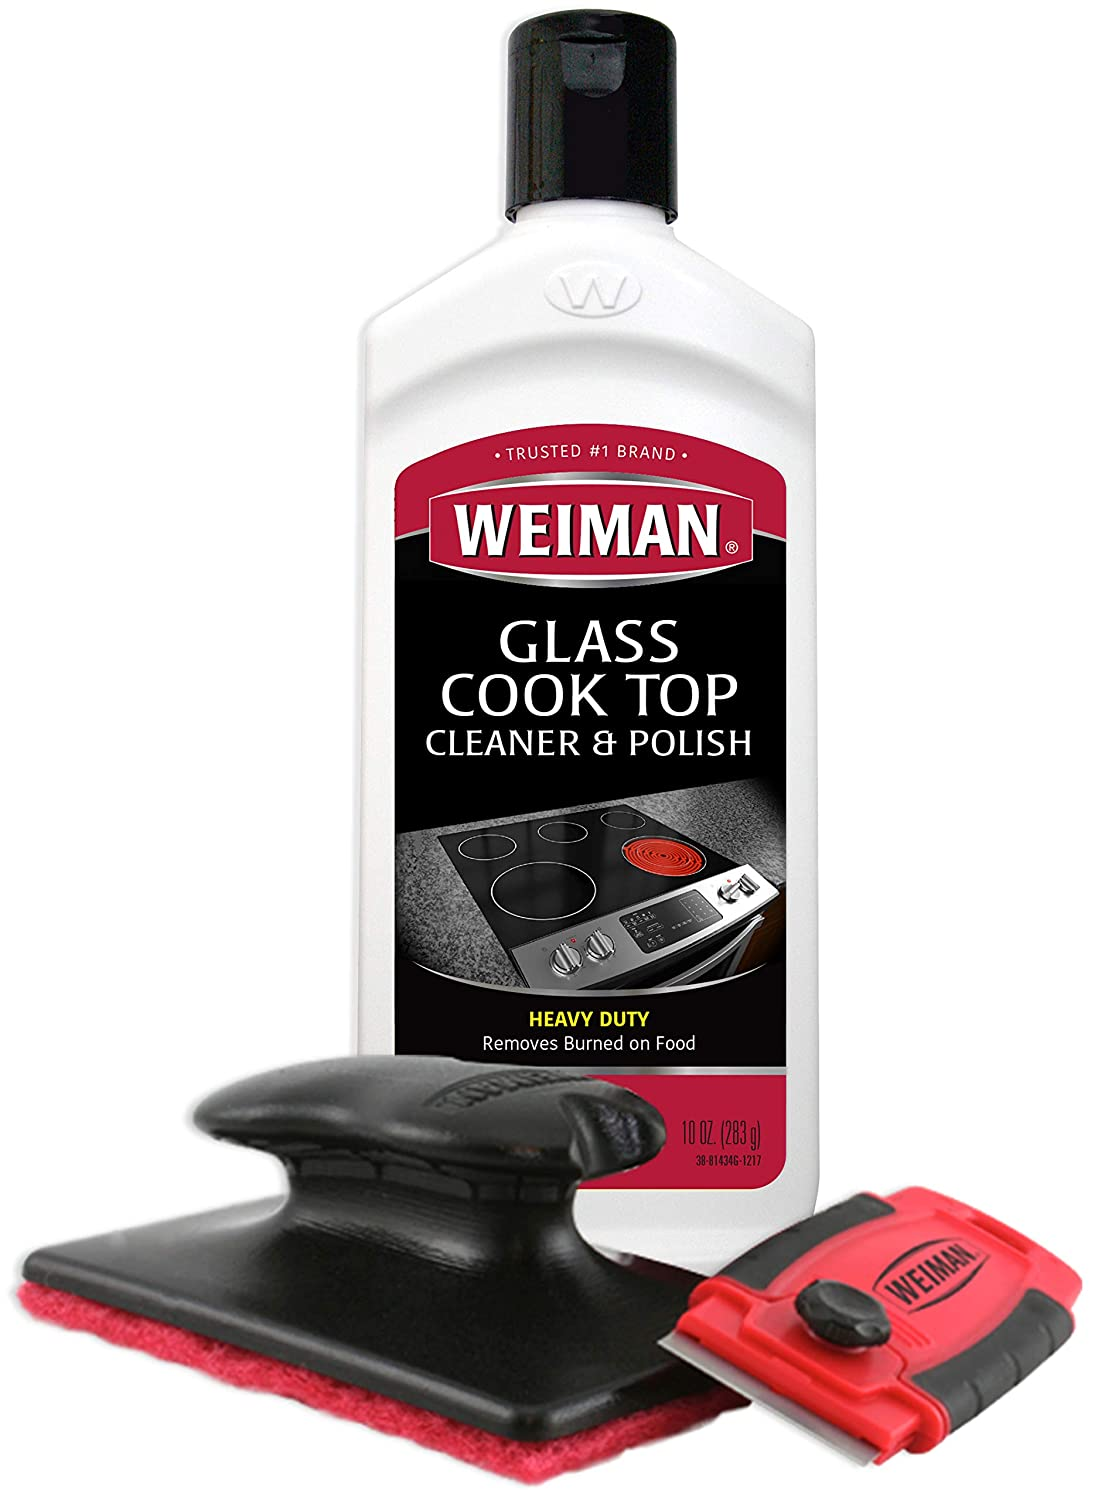 Weiman Cooktop Cleaner Kit - Cook Top Cleaner and Polish 10 oz. Scrubbing Pad, Cleaning Tool, Cooktop Razor Scraper